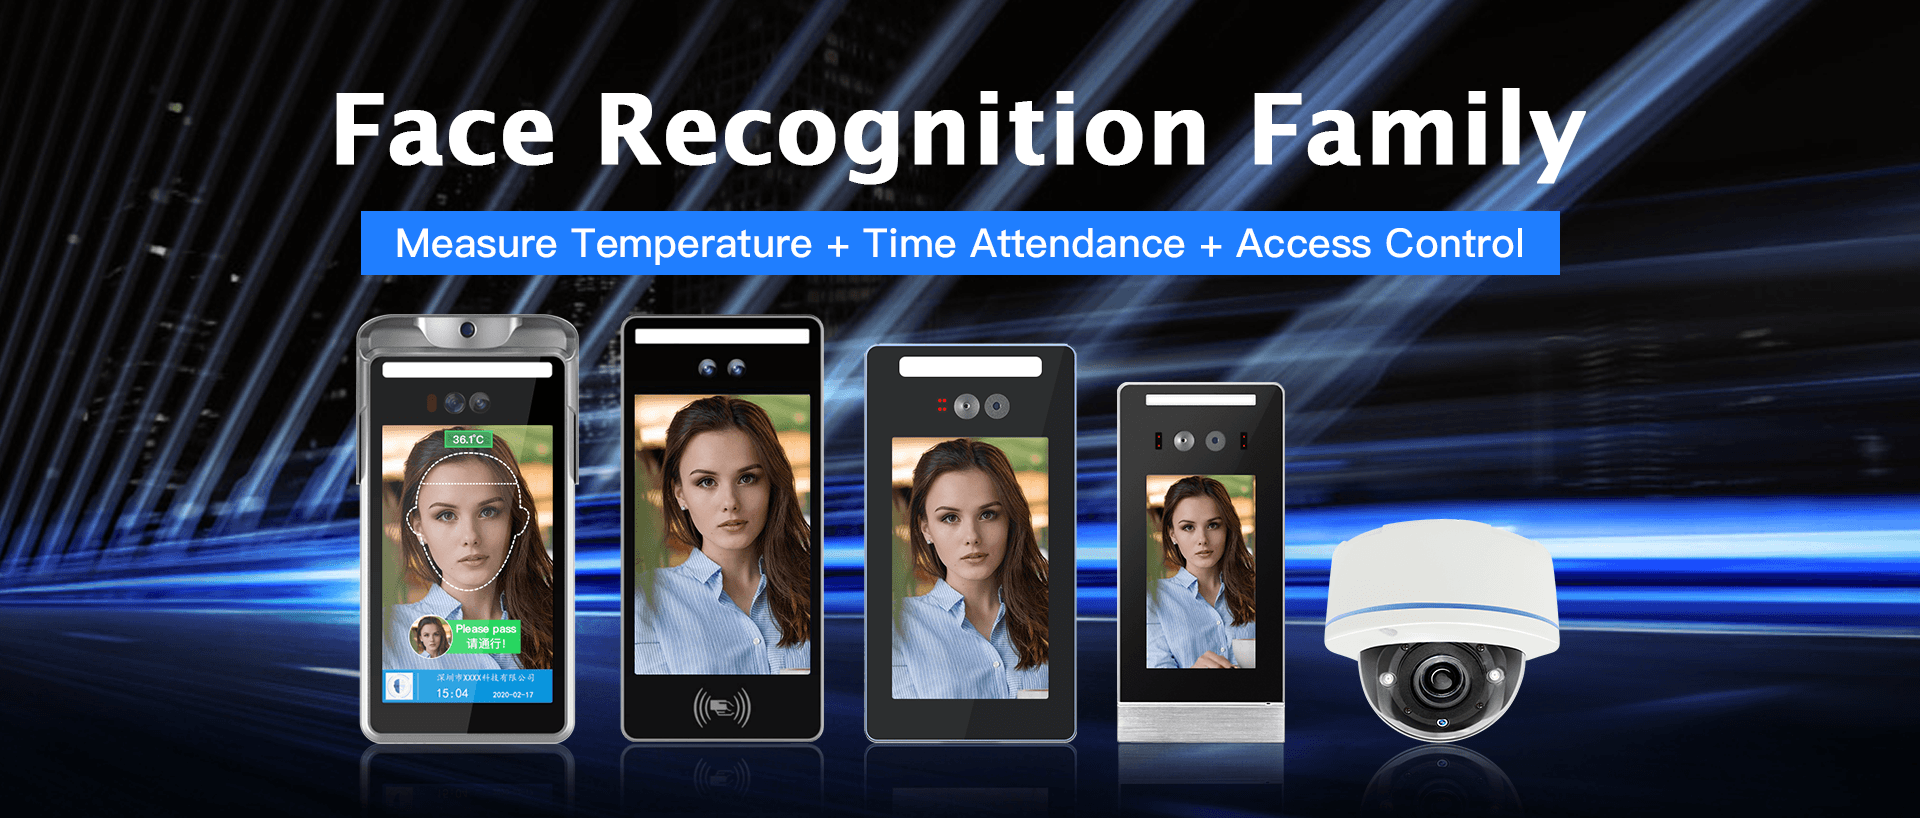 Face Recognition Family, Measure Temperature + Time Attendance + Access Control